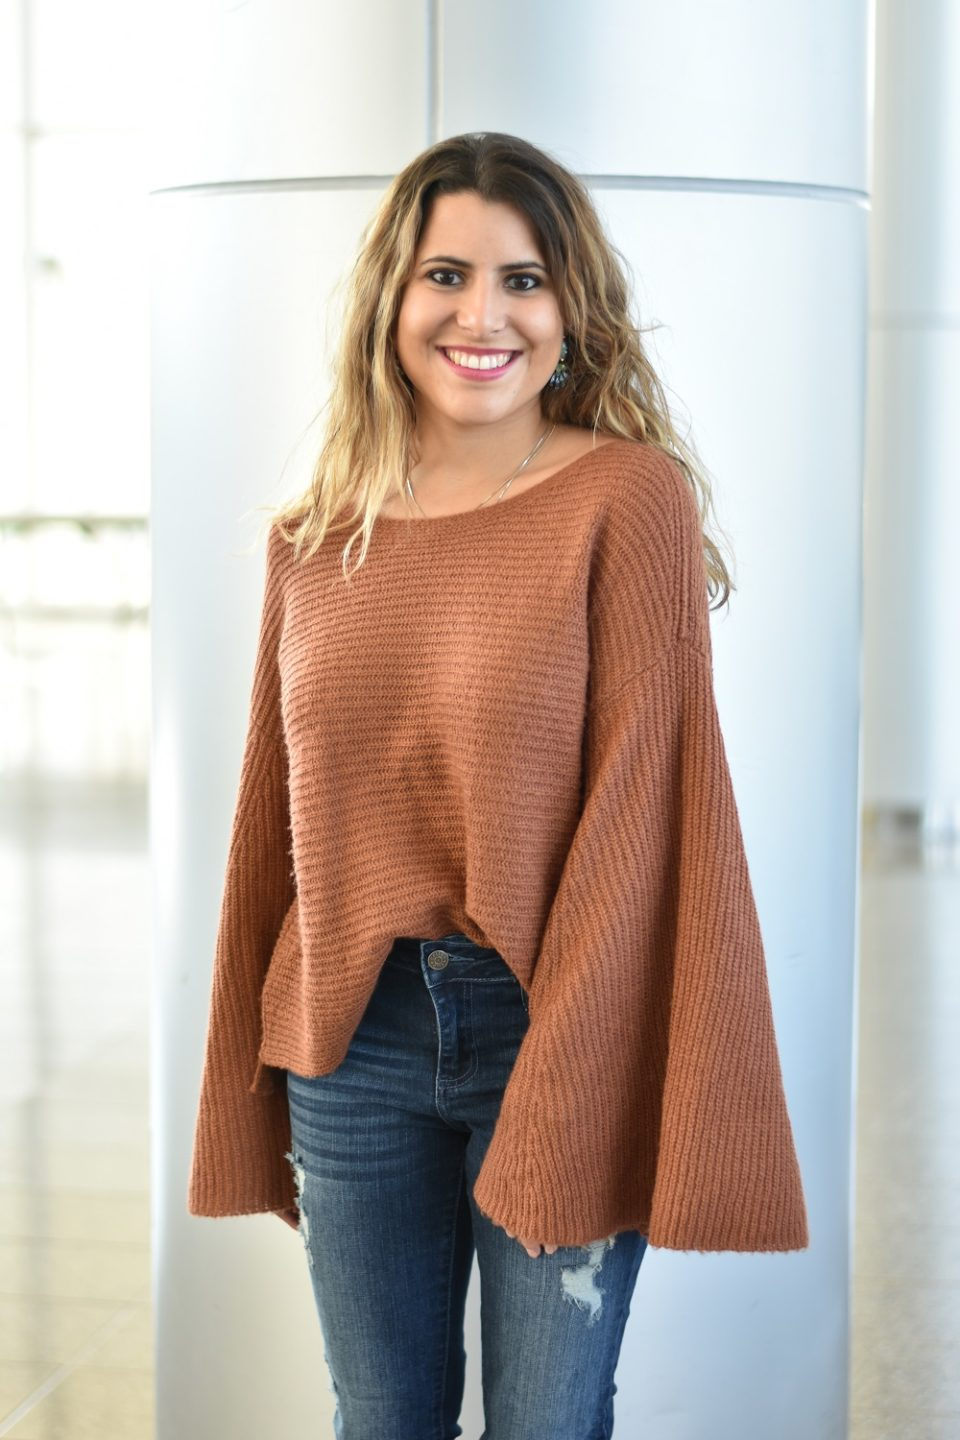 Sweaters with Dramatic Sleeves